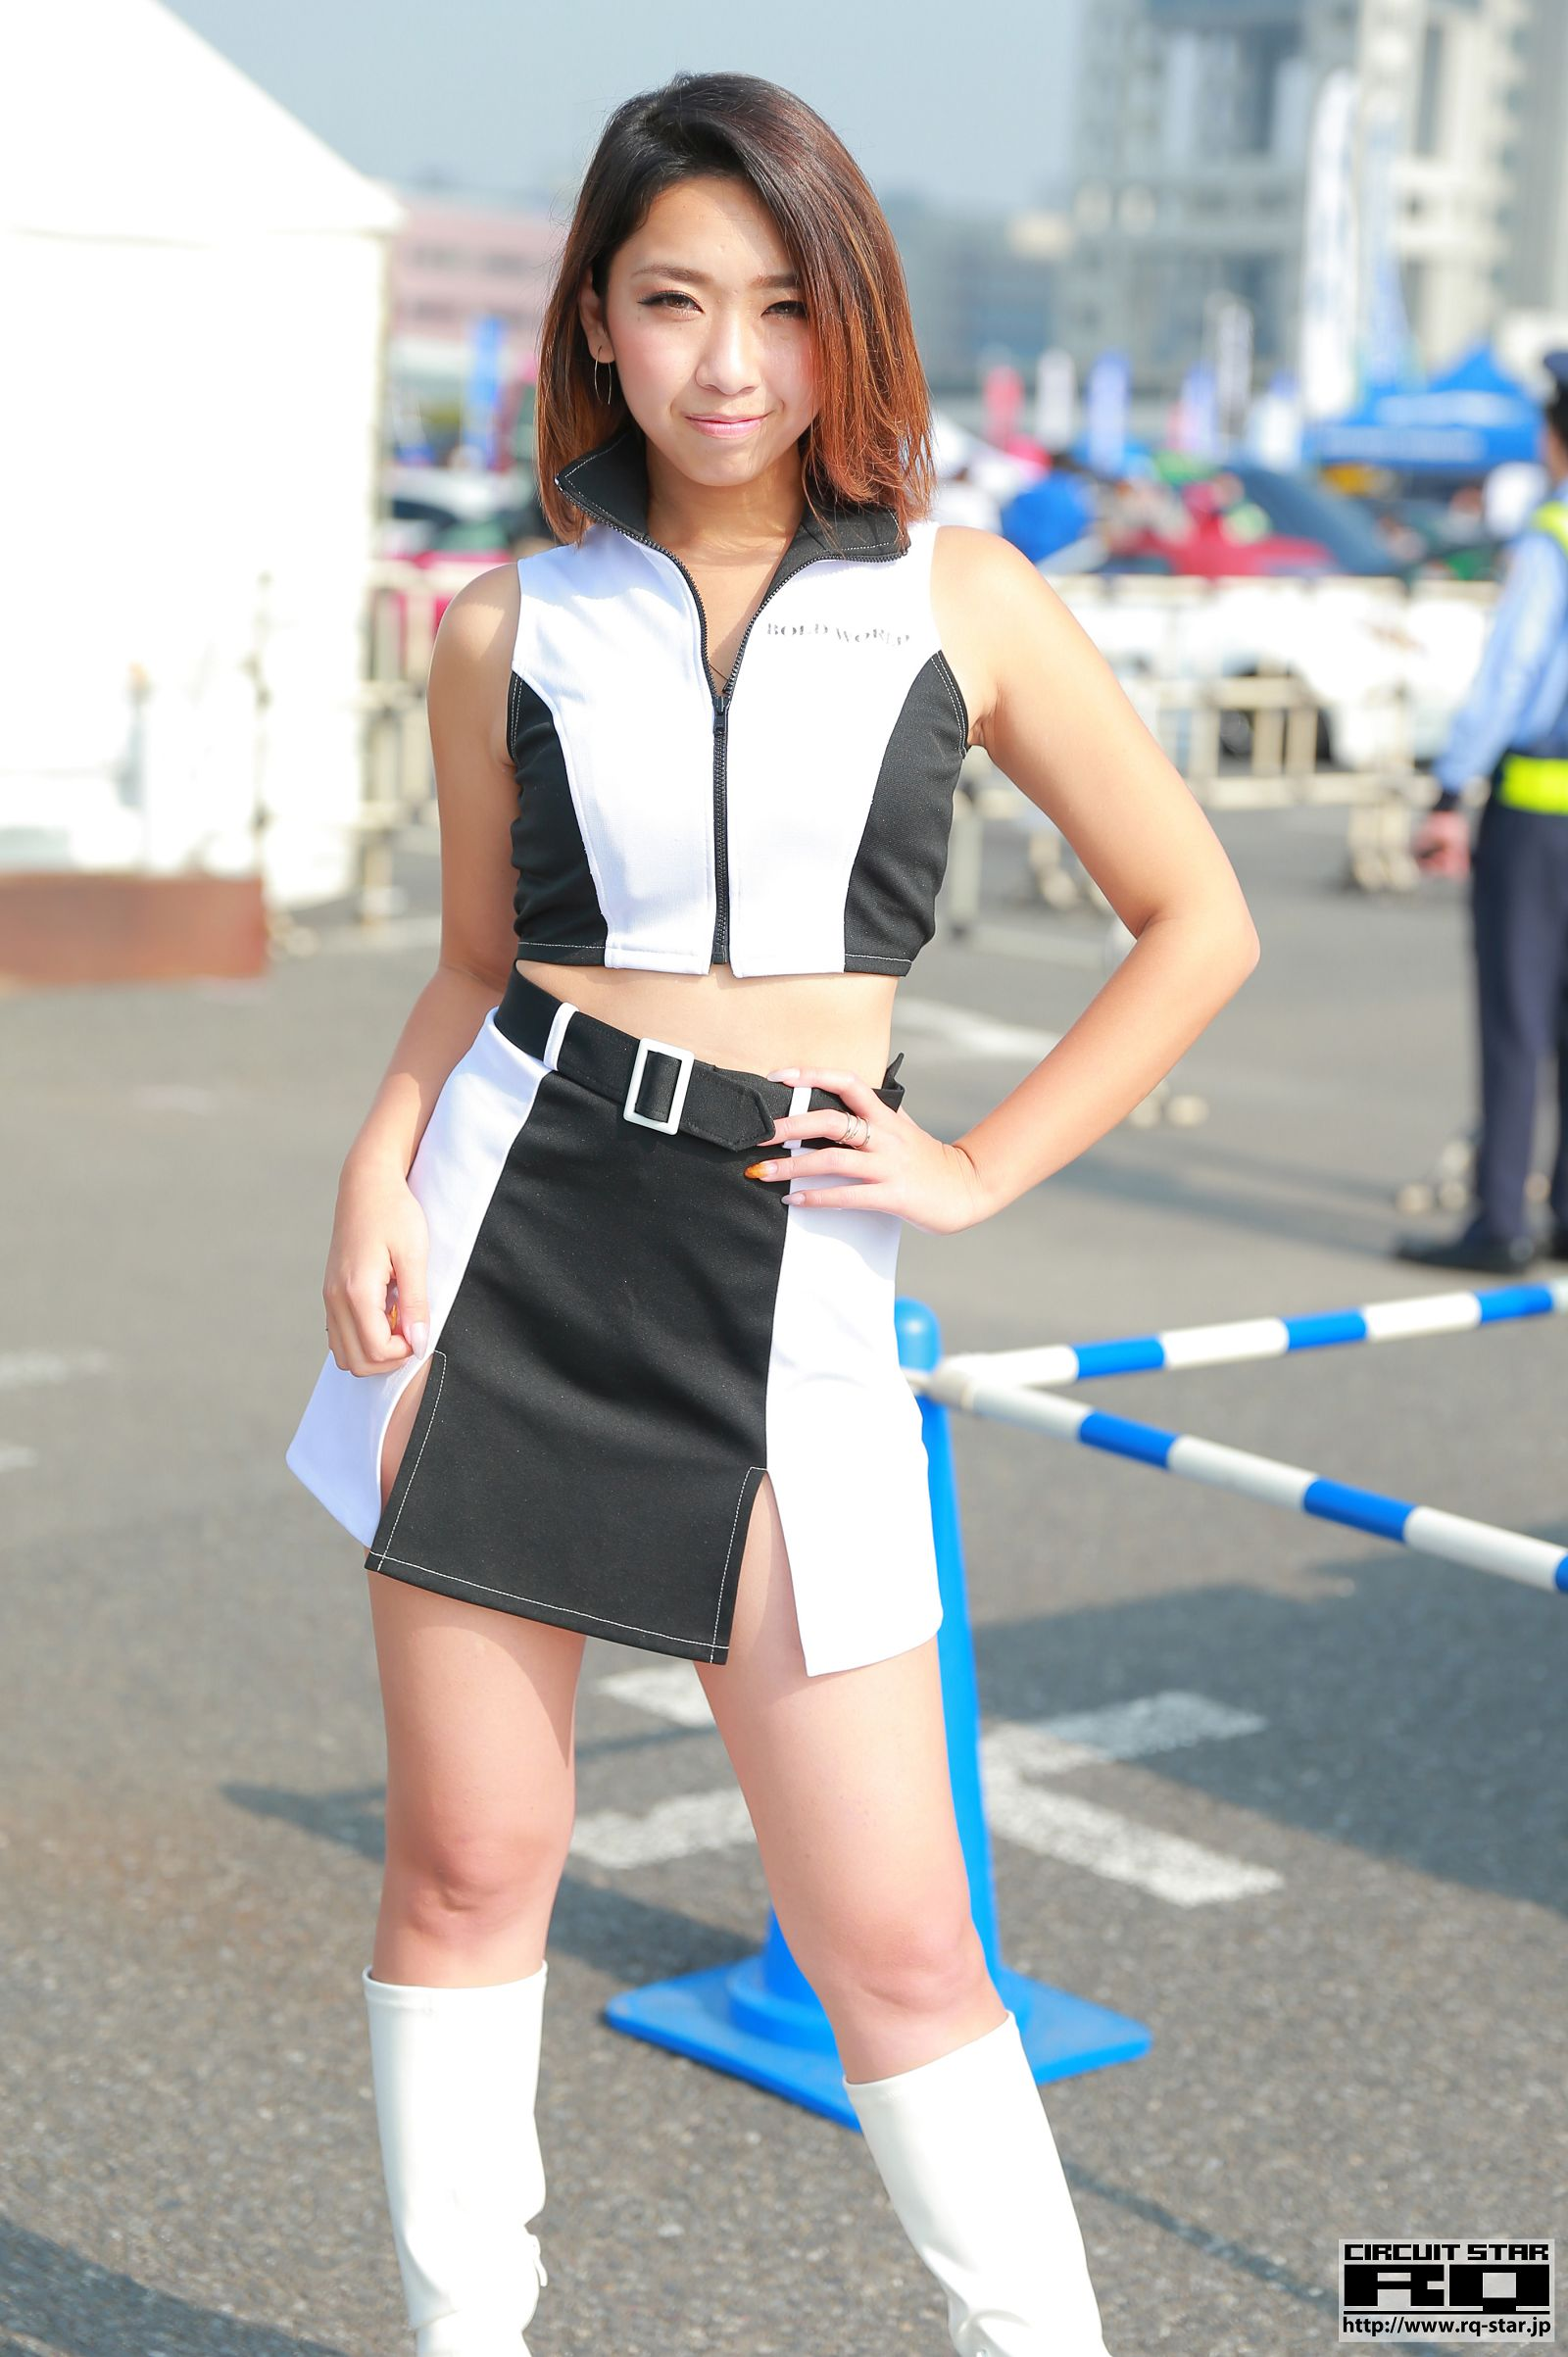 [RQ STAR美女] 2017.11.15 D1 GRAND PRIX in TOKOY 2015 D1GP お台場Vol.6[77P] RQ STAR 第2张